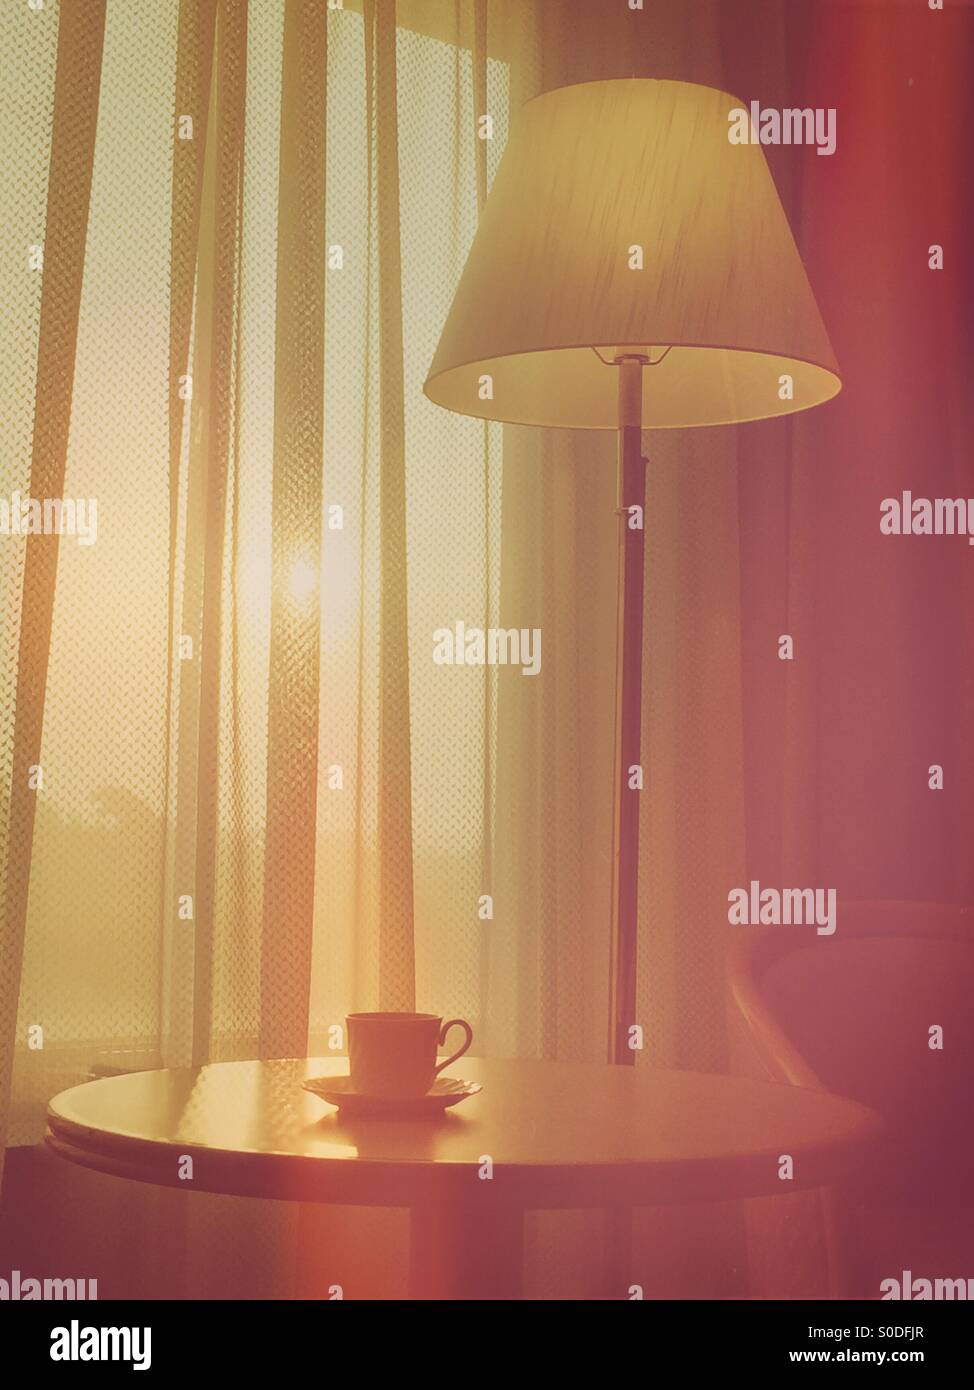 Hotel room sunrise scene featuring coffee cup, table, floor lamp, chair and curtains with vintage bokeh overlay. Stock Photo